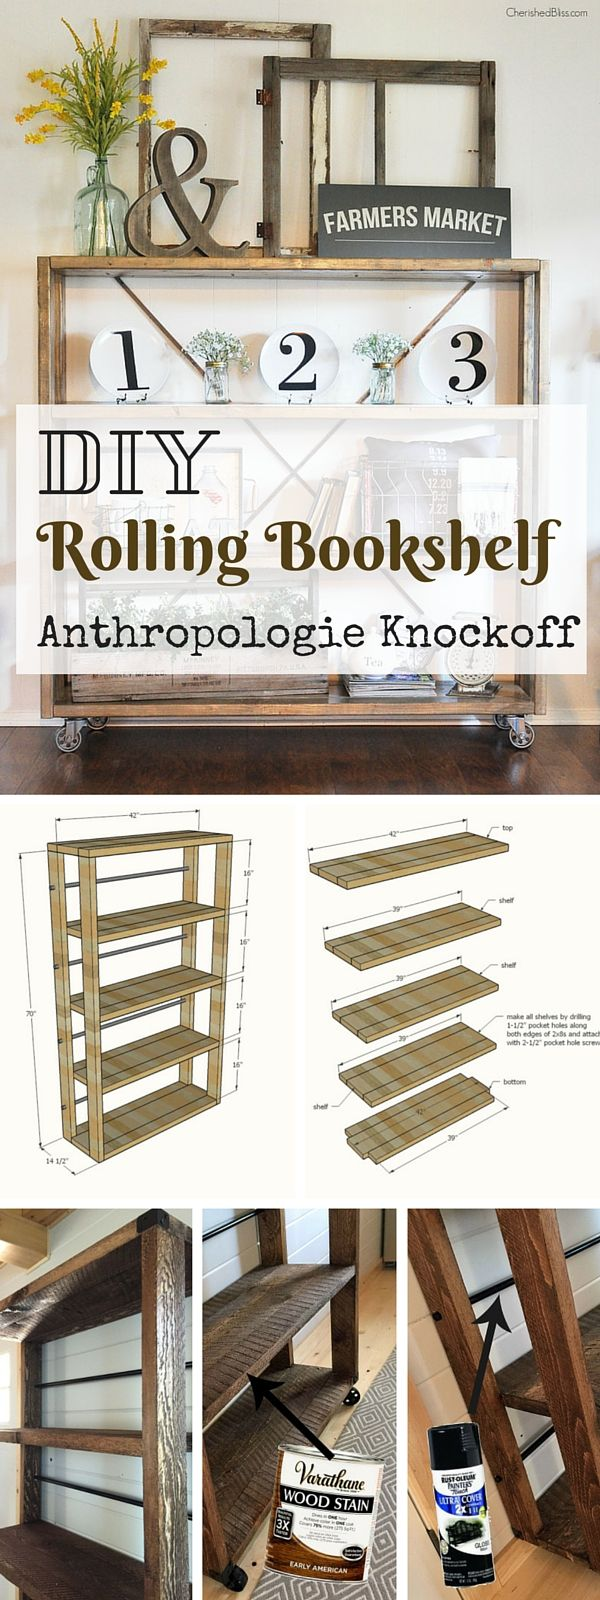 Check out the tutorial: #DIY #Anthropologie Rolling Bookshelf Knockoff